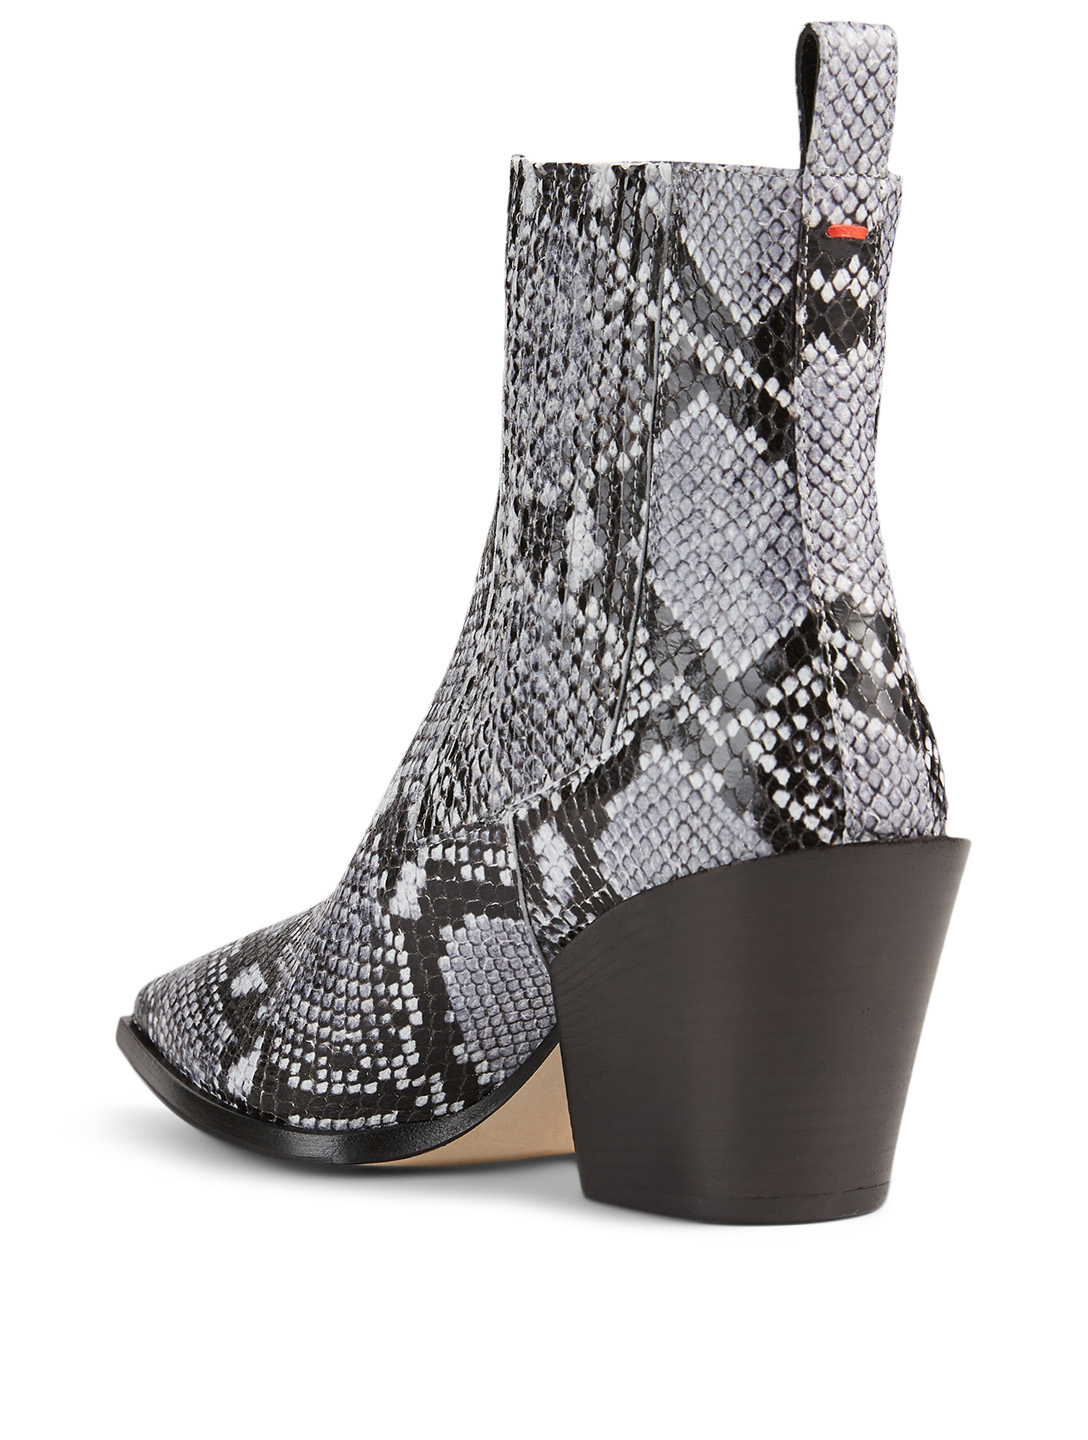 AEYDE Kate Leather Heeled Ankle Boots In Python Print Women's Blue